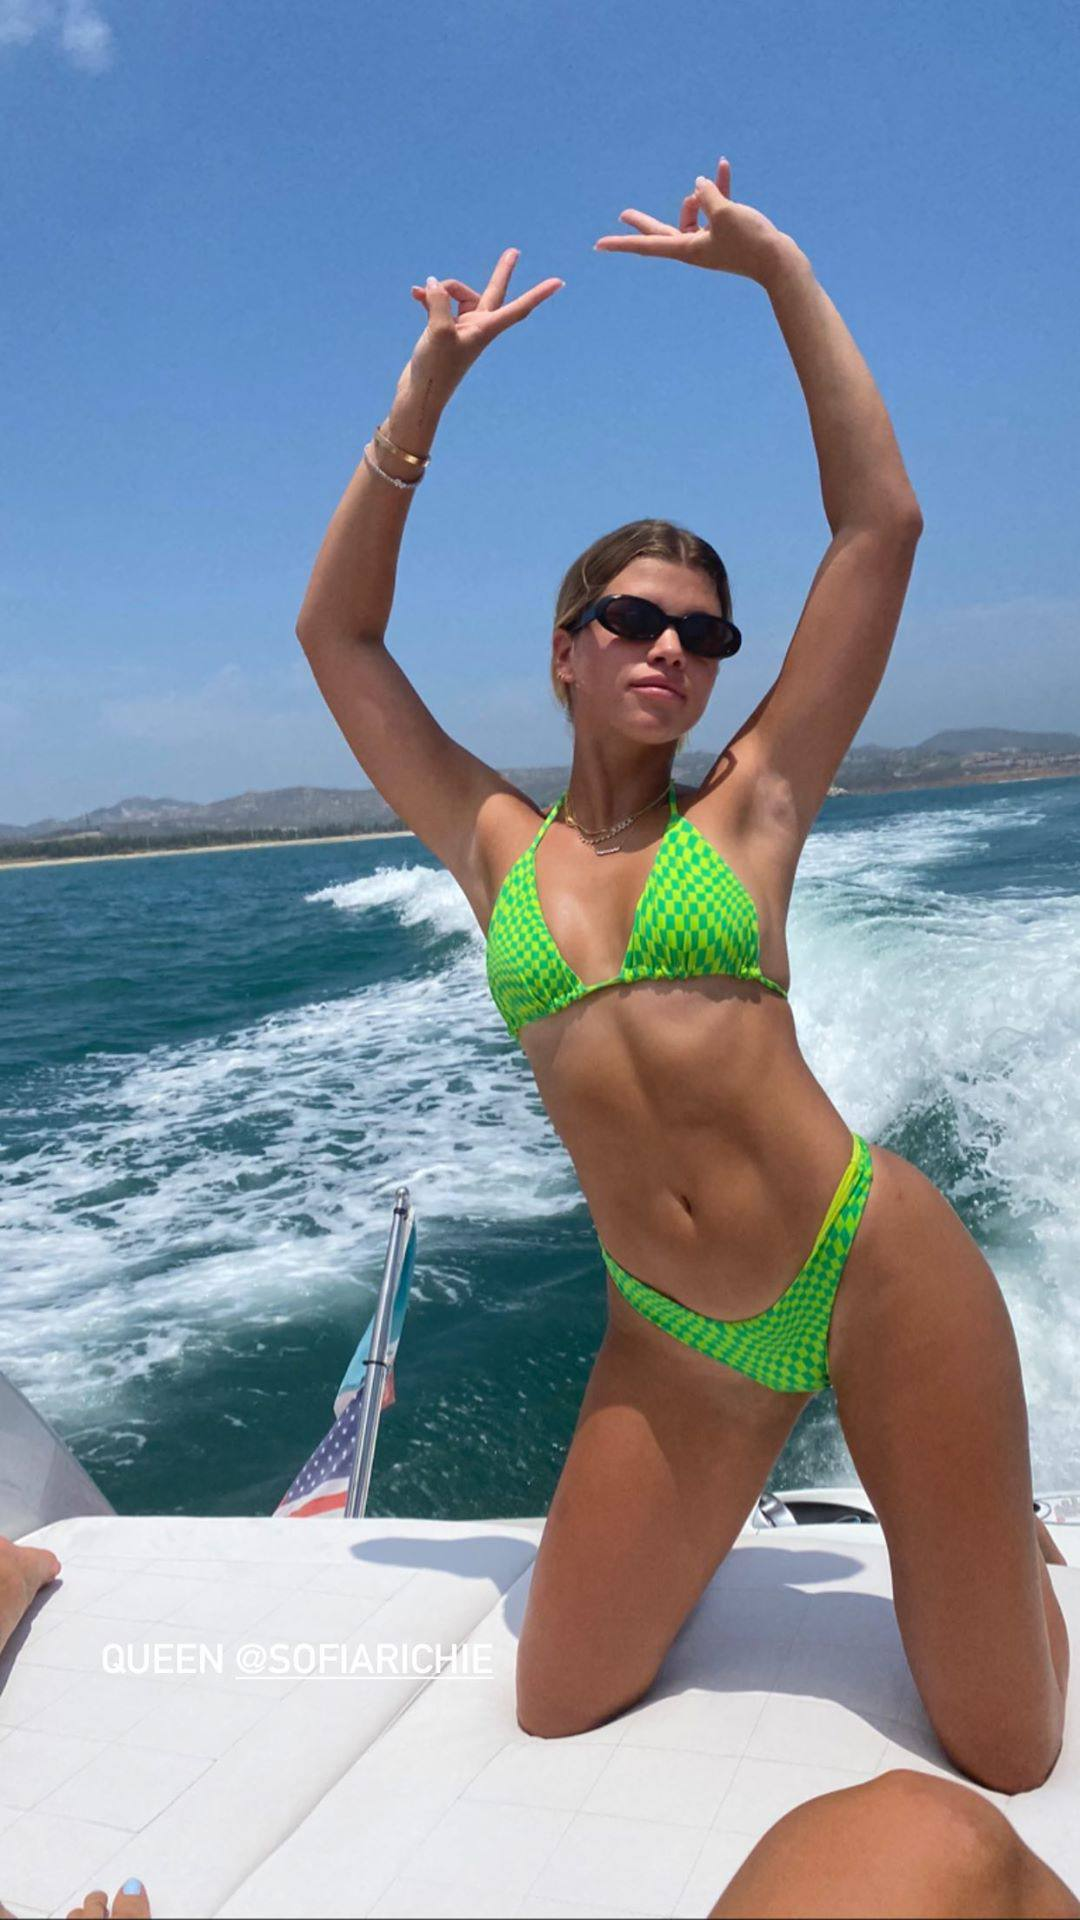 Sofia Richie Fantastic Body